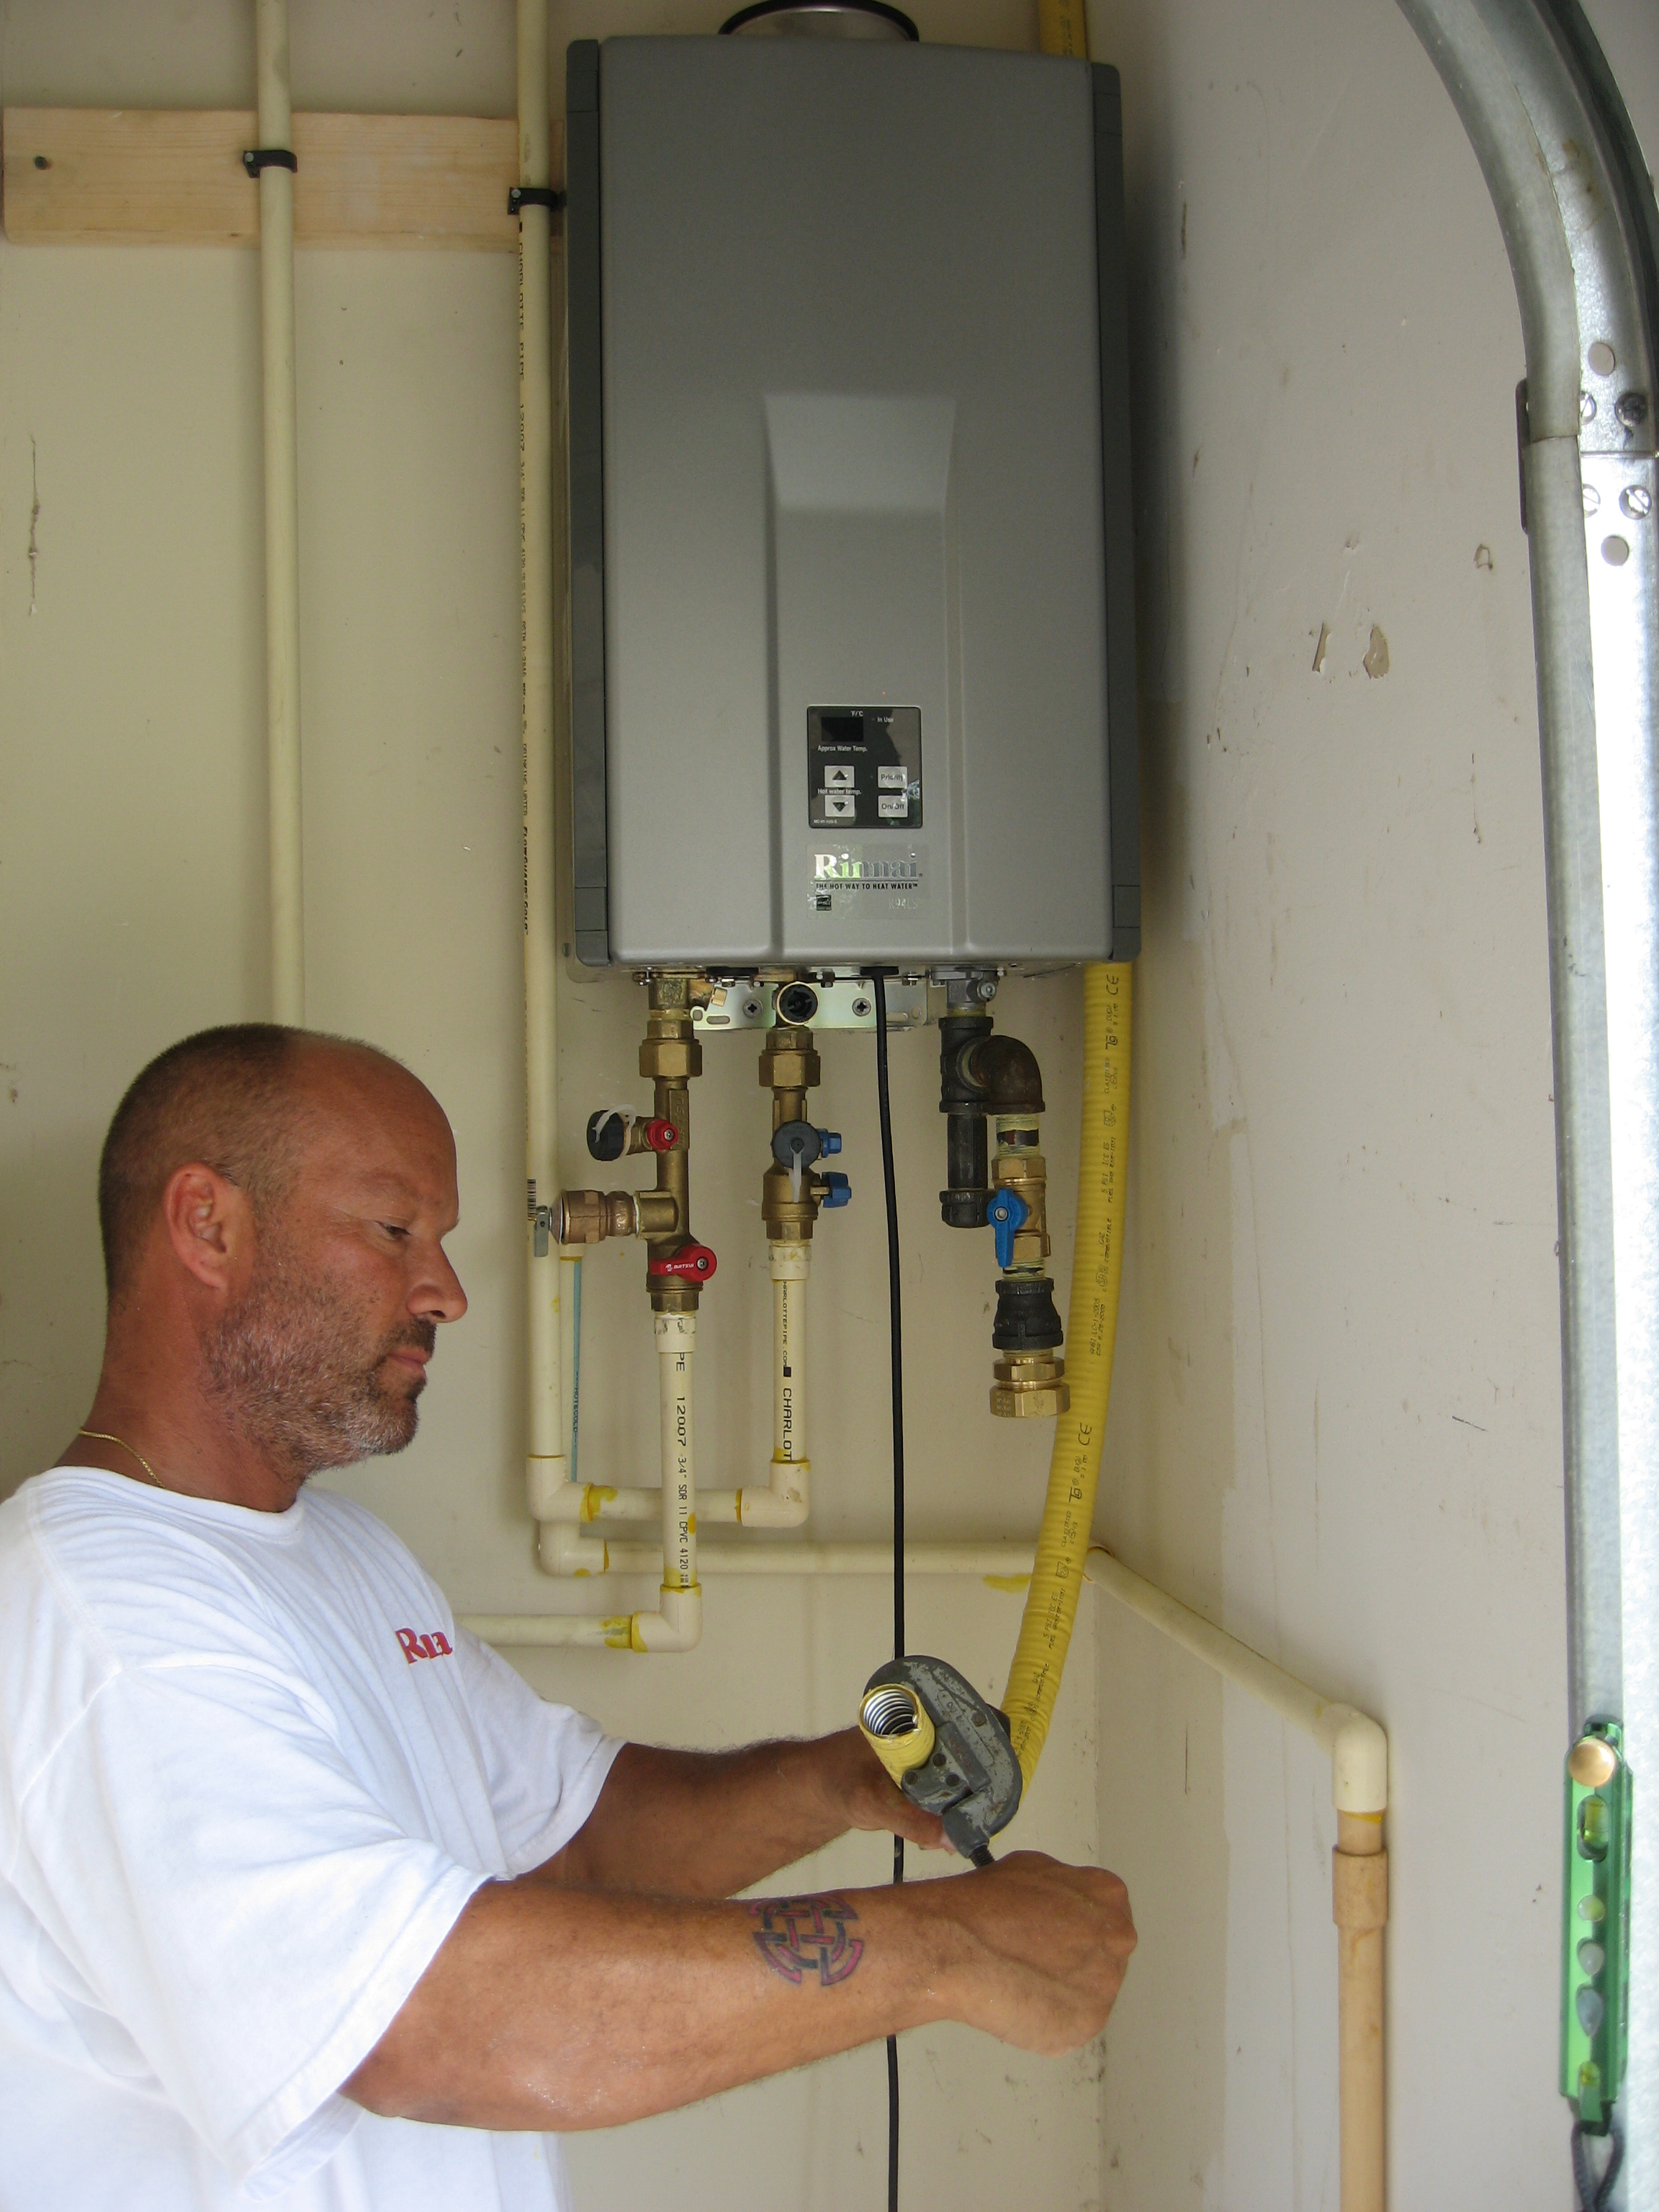 Rinnai Announces Results Of Consumer Water Heating Survey